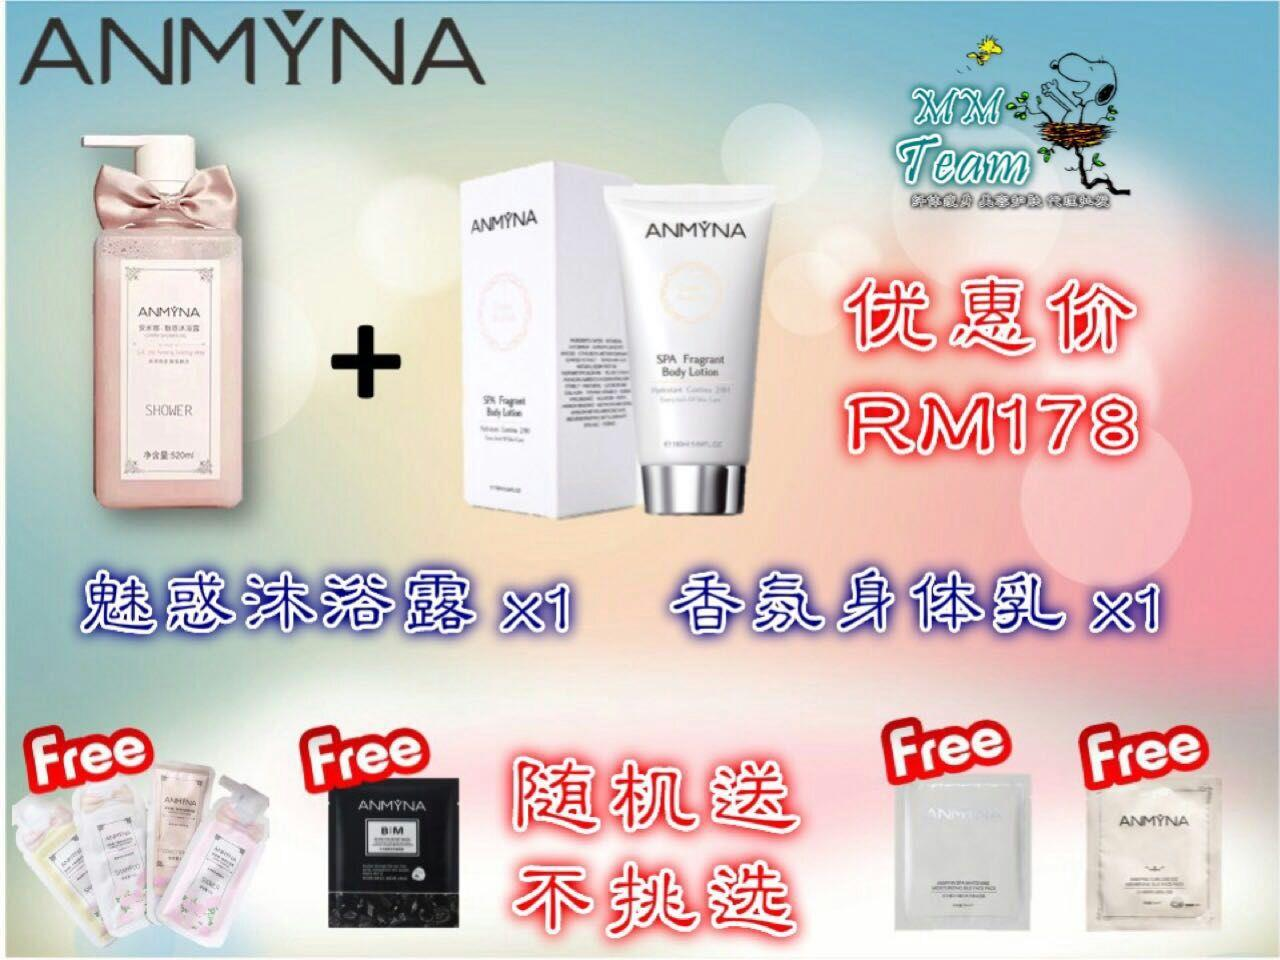 ANMYNA Charm Shower Gel + SPA Fragrant Body Lotion Package